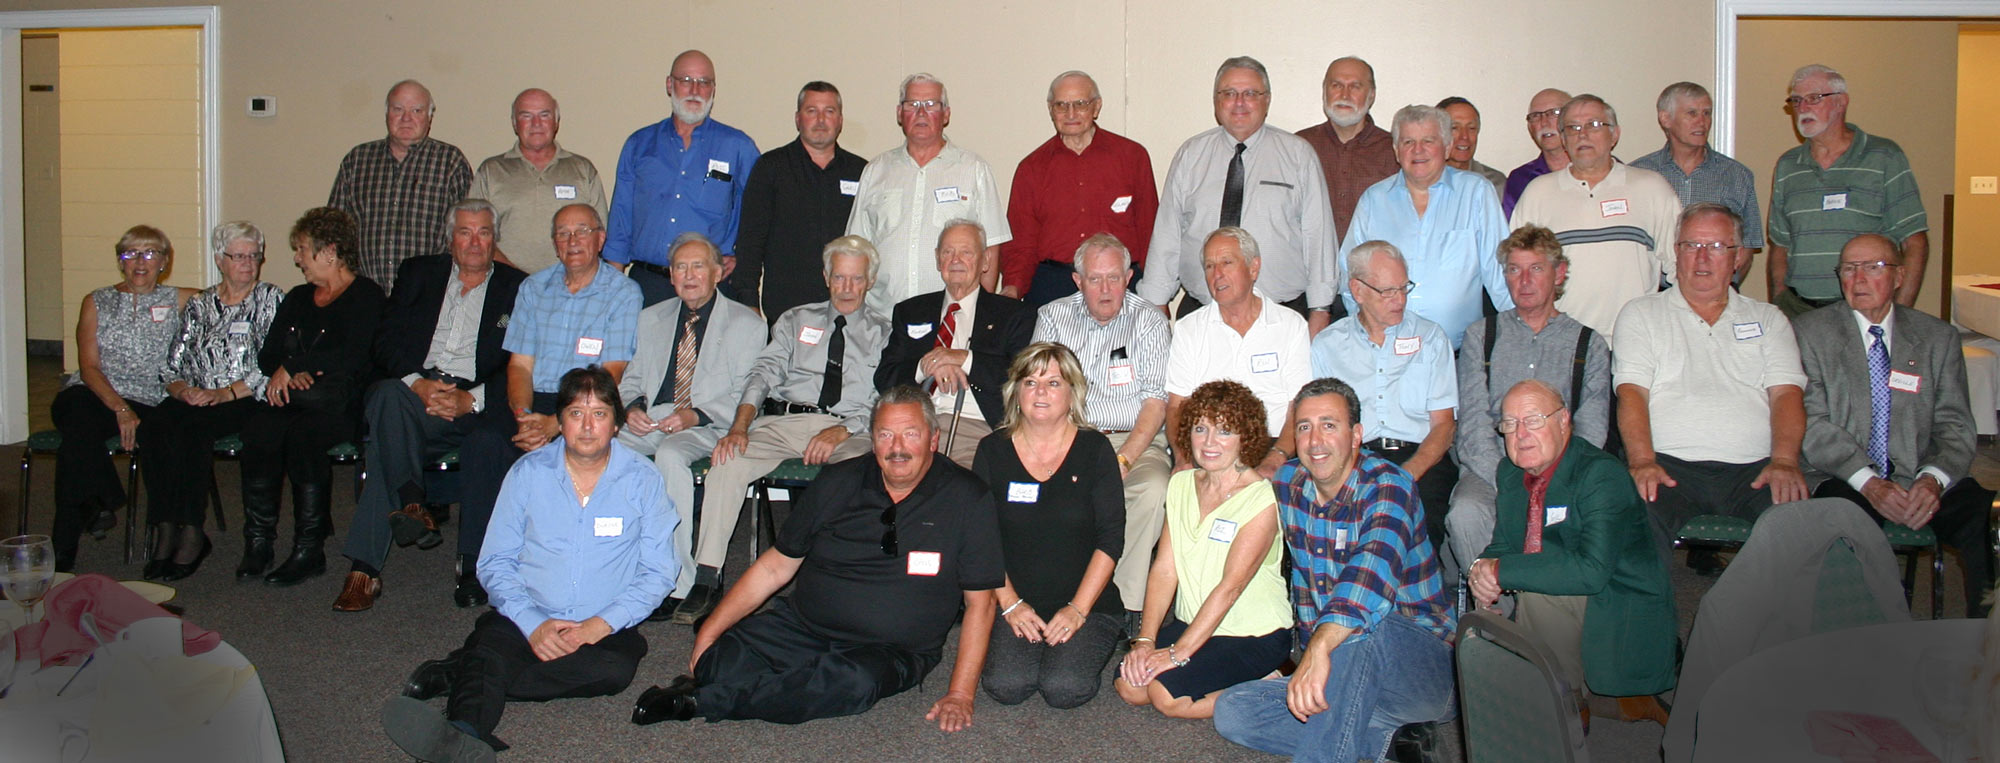 unifor ford local retirees home page retirees thanksgiving 2016